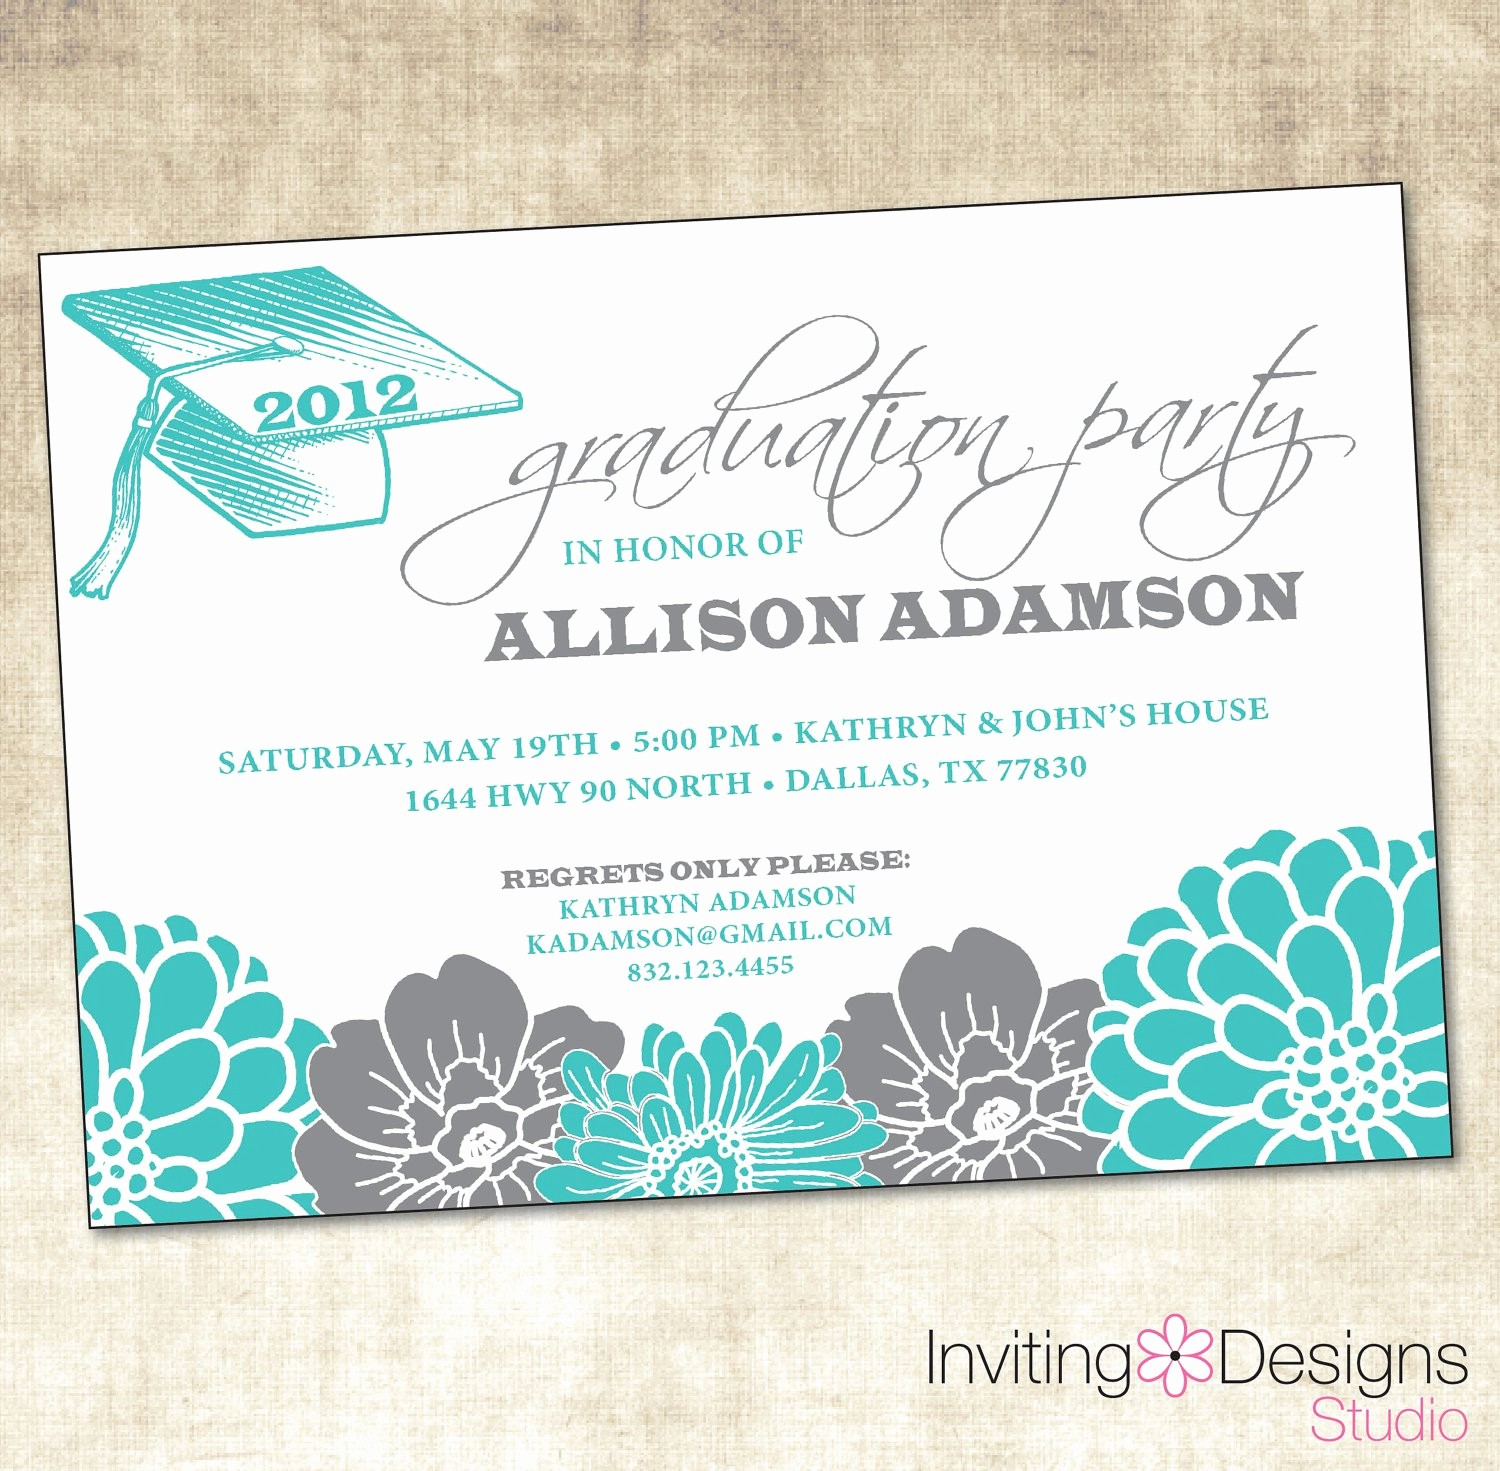 Template for Graduation Party Invitation Inspirational Graduation Invitation Free Graduation Invitation